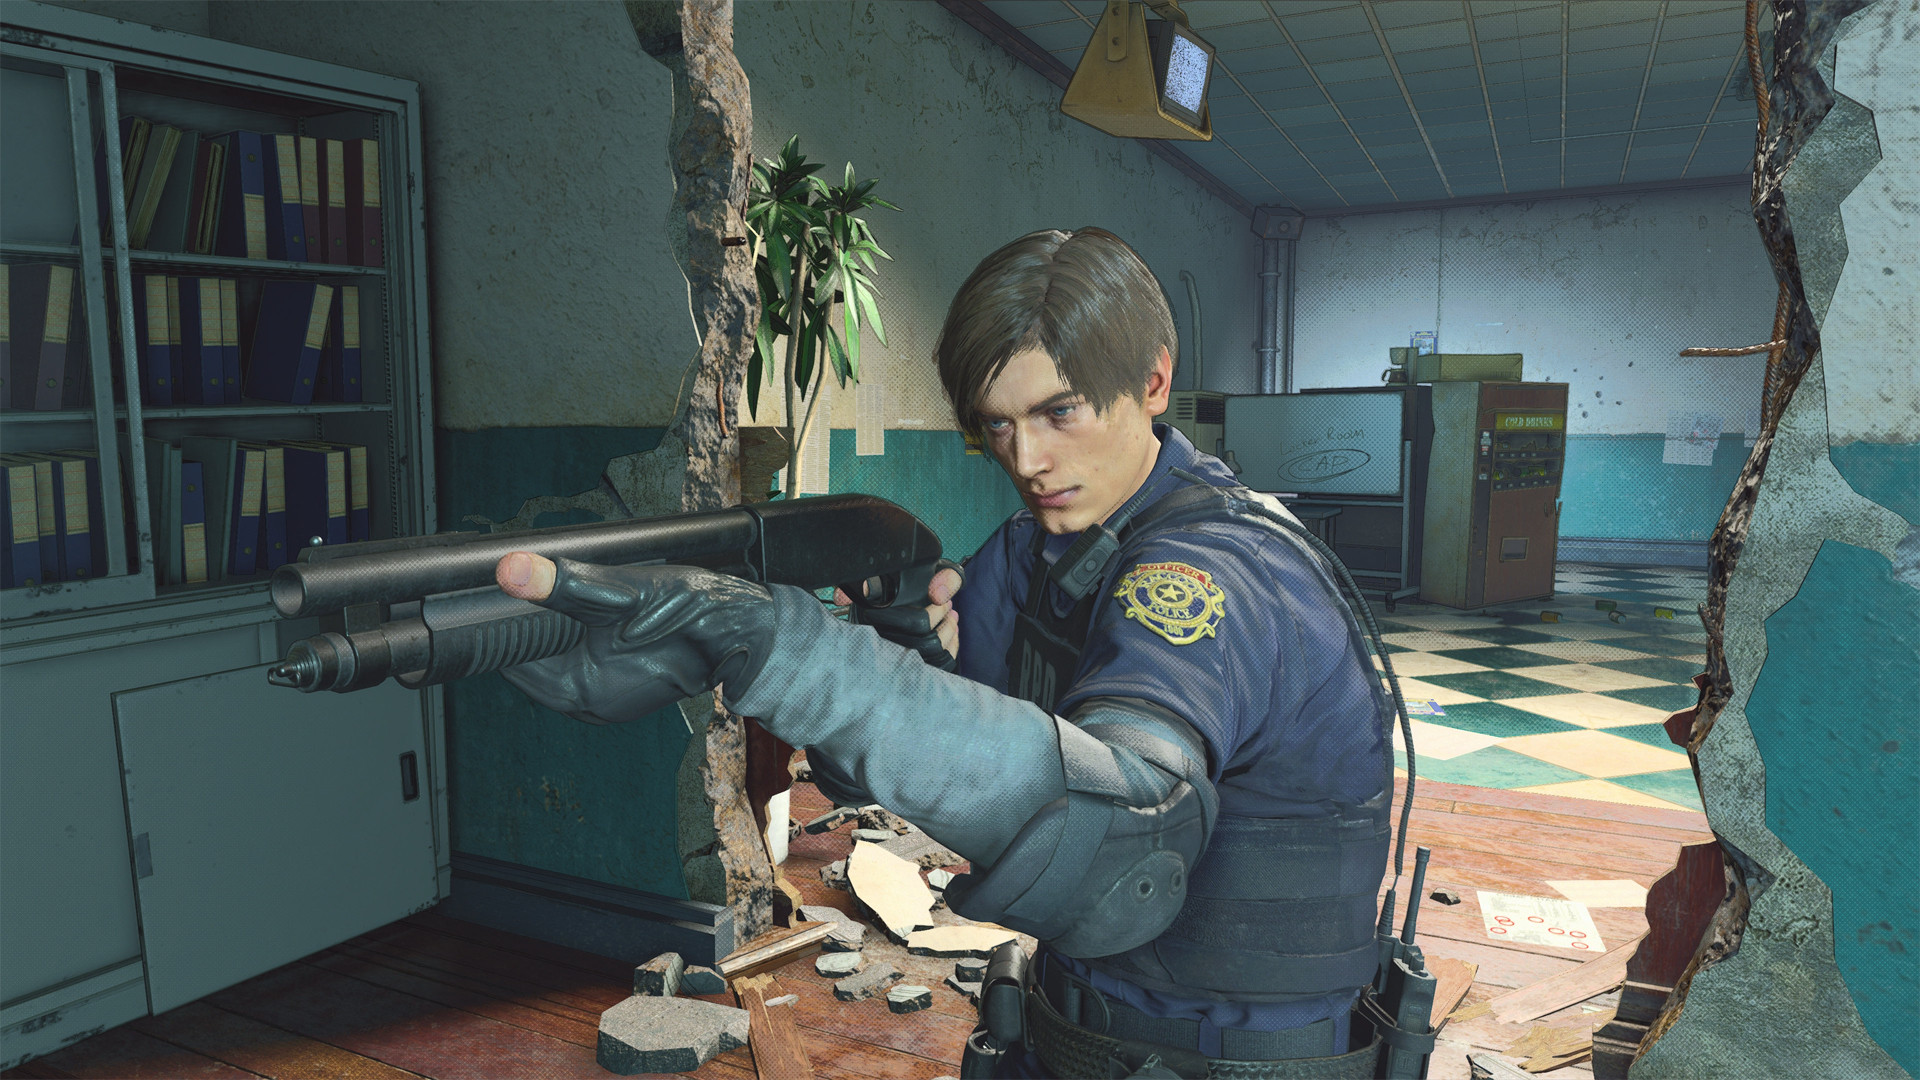 Resident Evil Re:Verse has been delayed to 2022